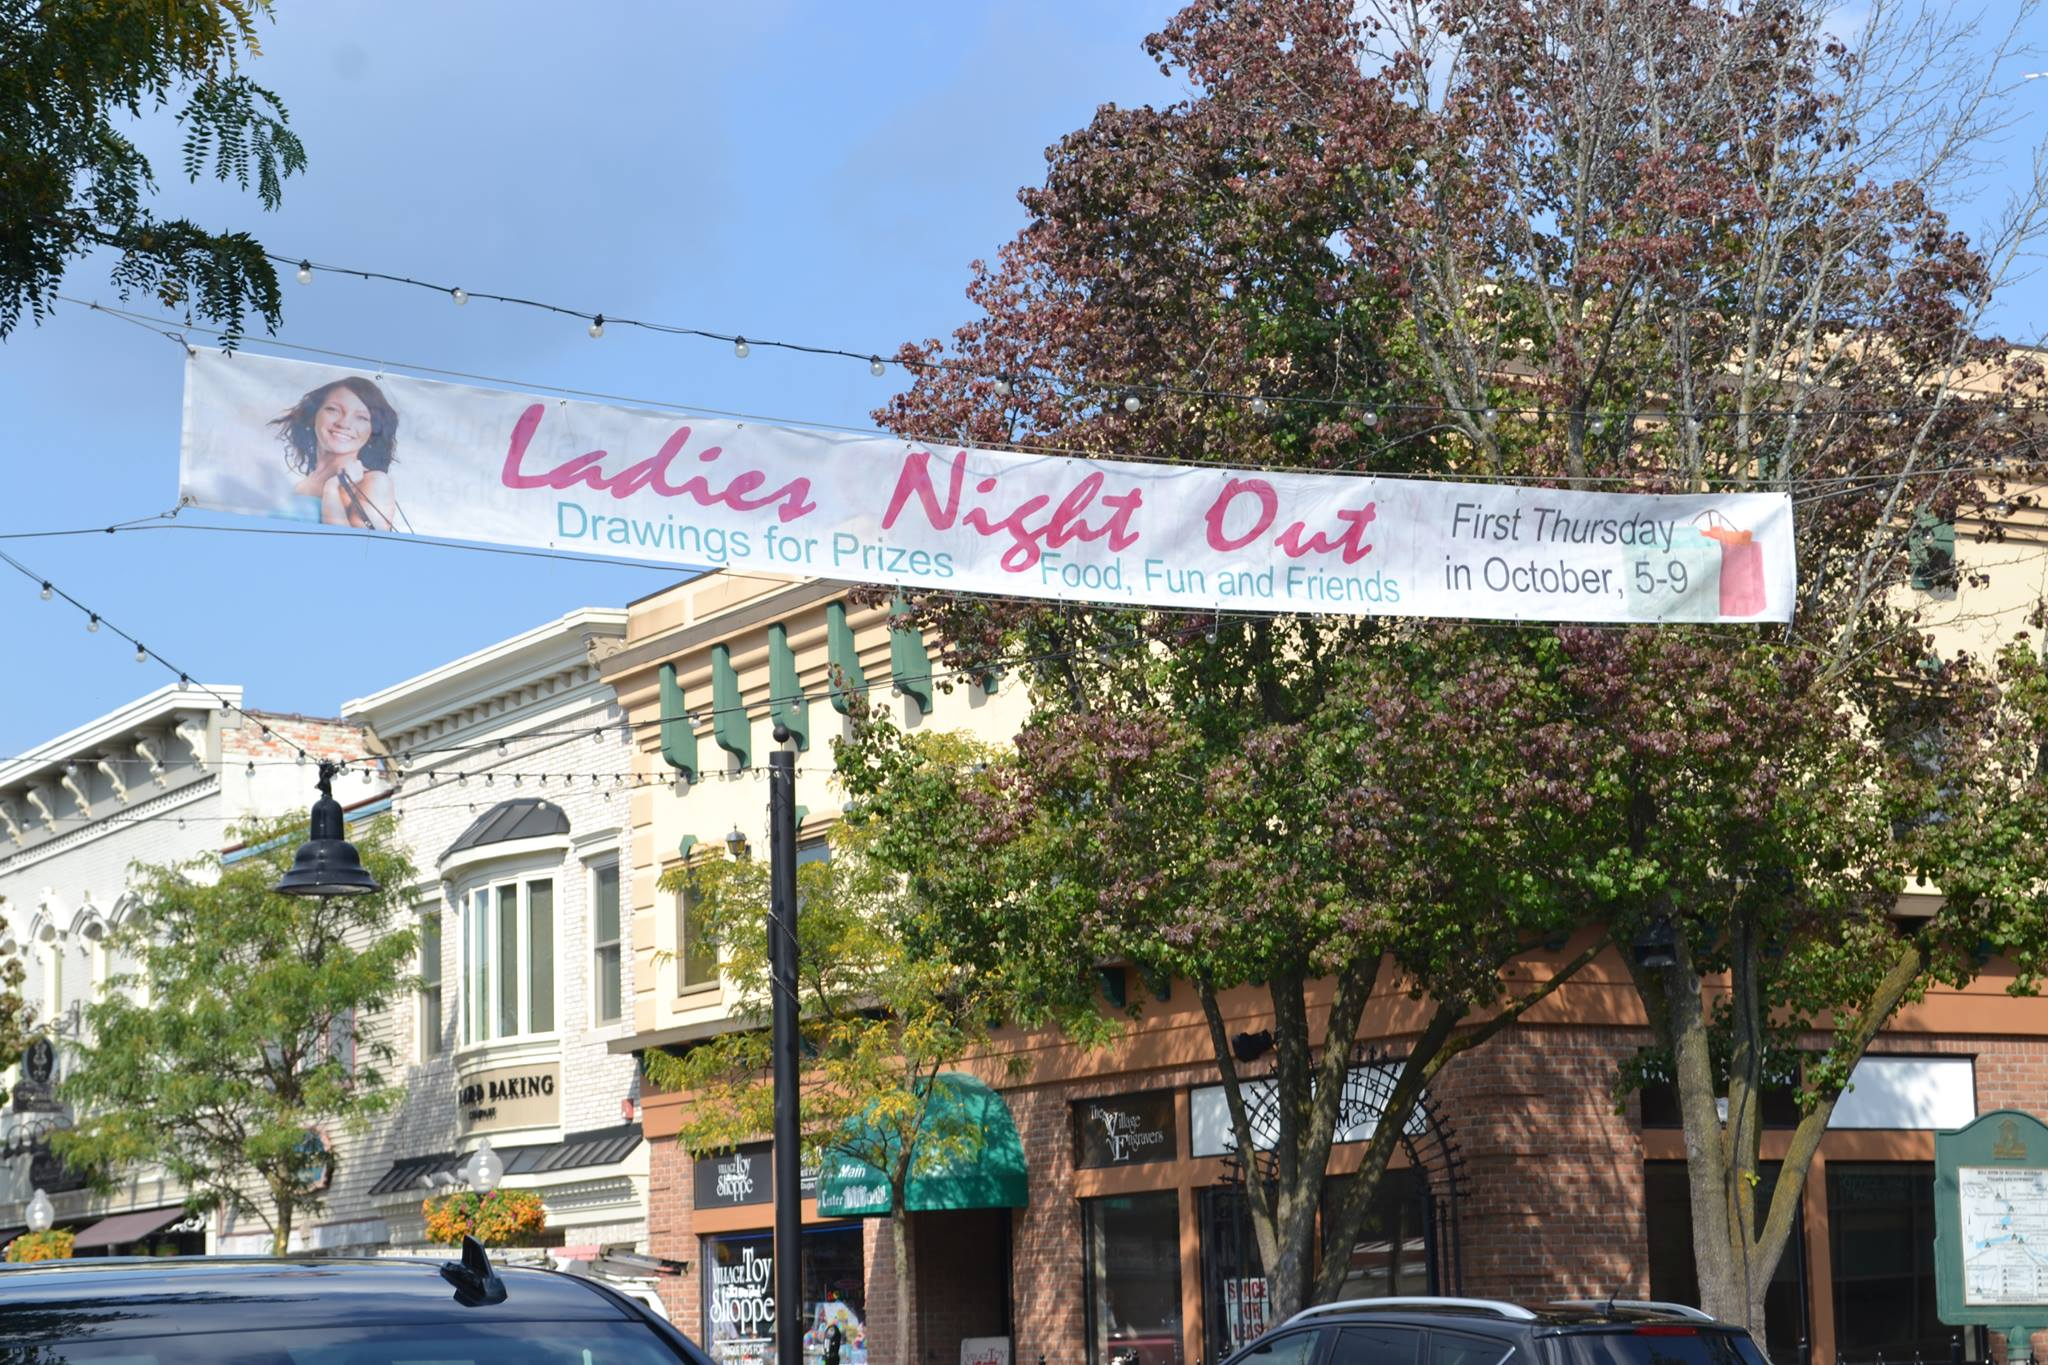 Ladies Night Out Returns to Milford – Oct. 3